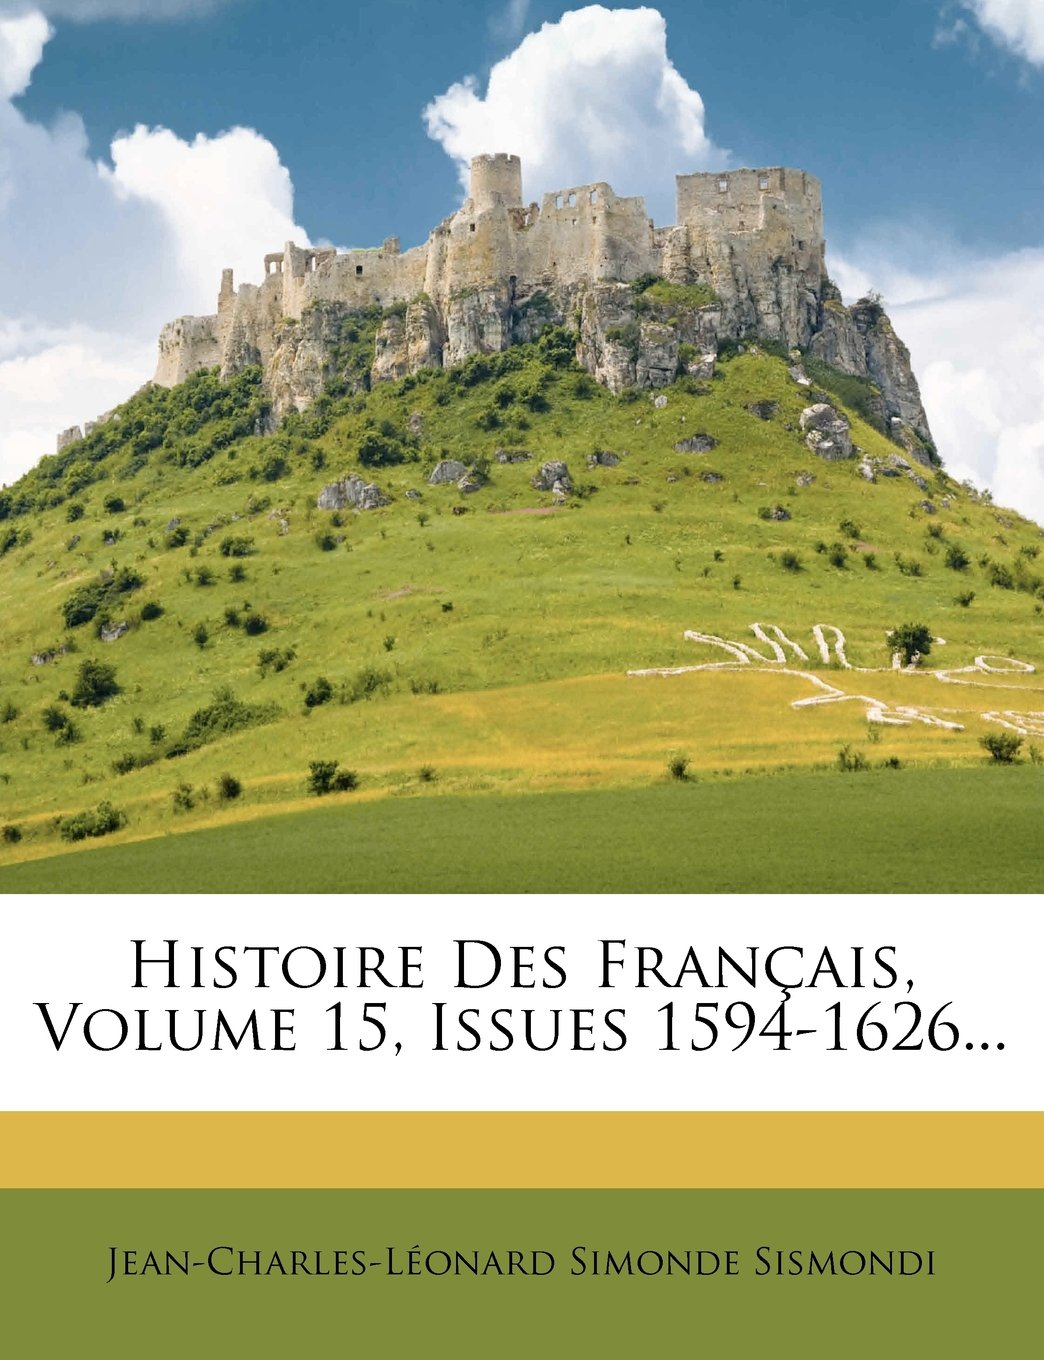 Histoire Des Francais, Volume 15, Issues 1594-1626... (French Edition) PDF